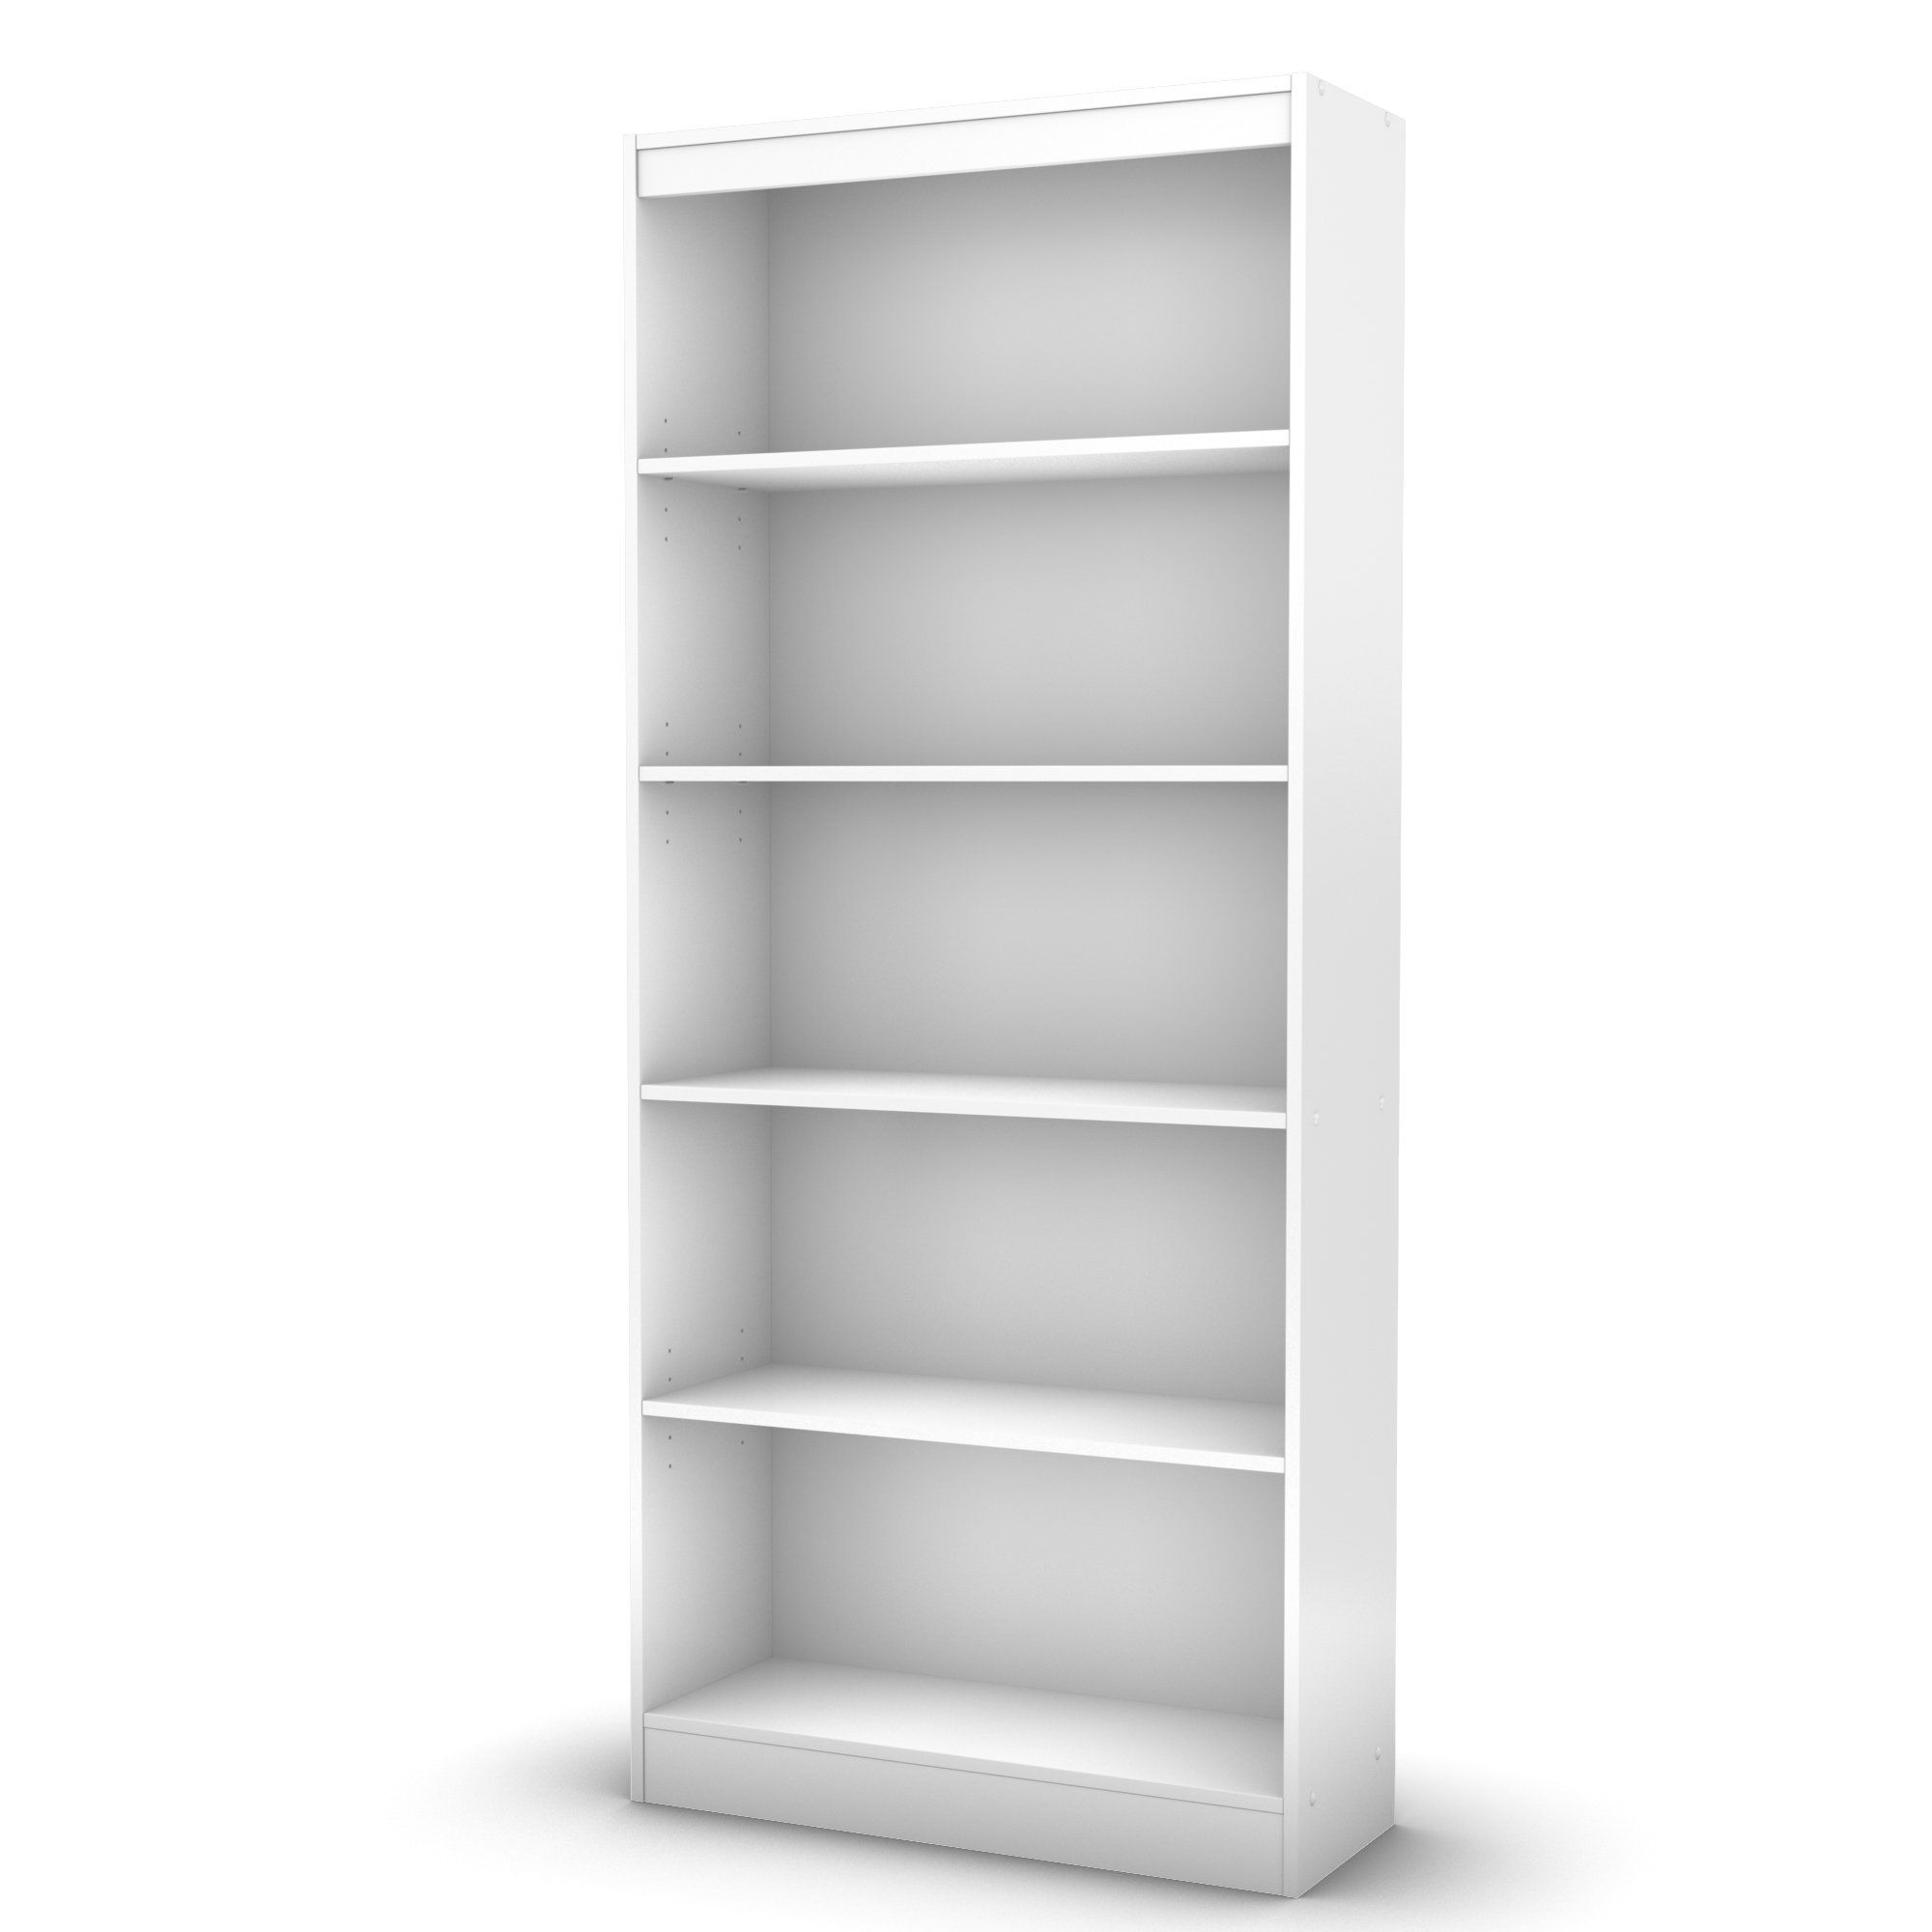 shelf standard shore size a handle will axess that south demands your storage lhtmabs is collection bookcase